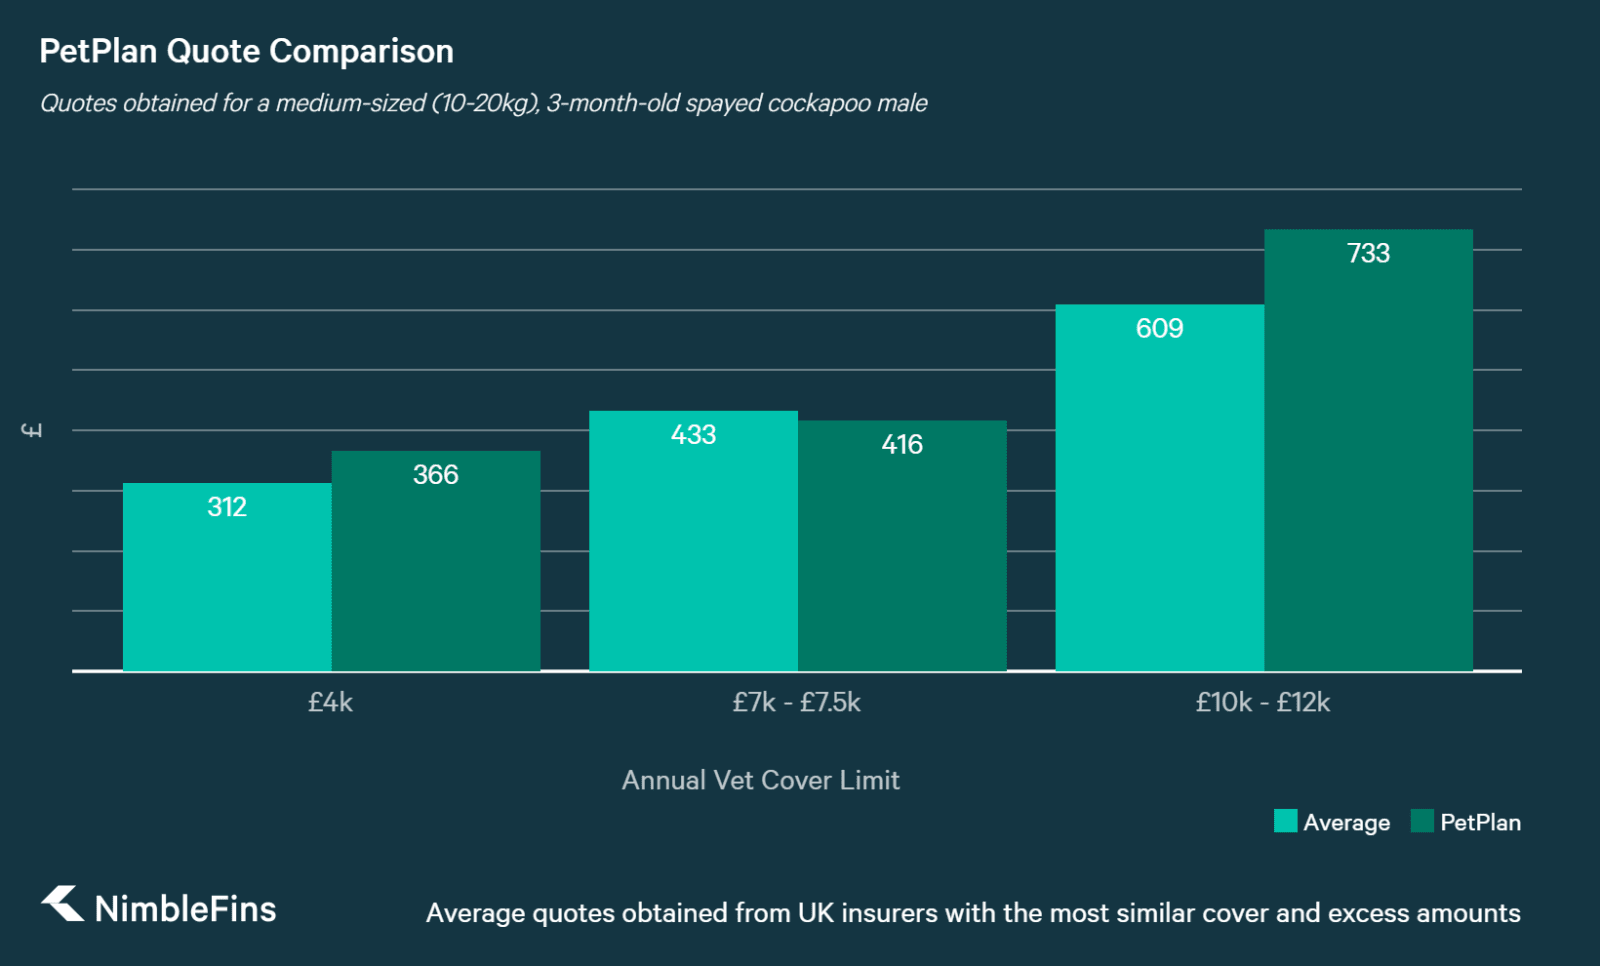 chart showing how petplan dog insurance quotes compare the the average in the market